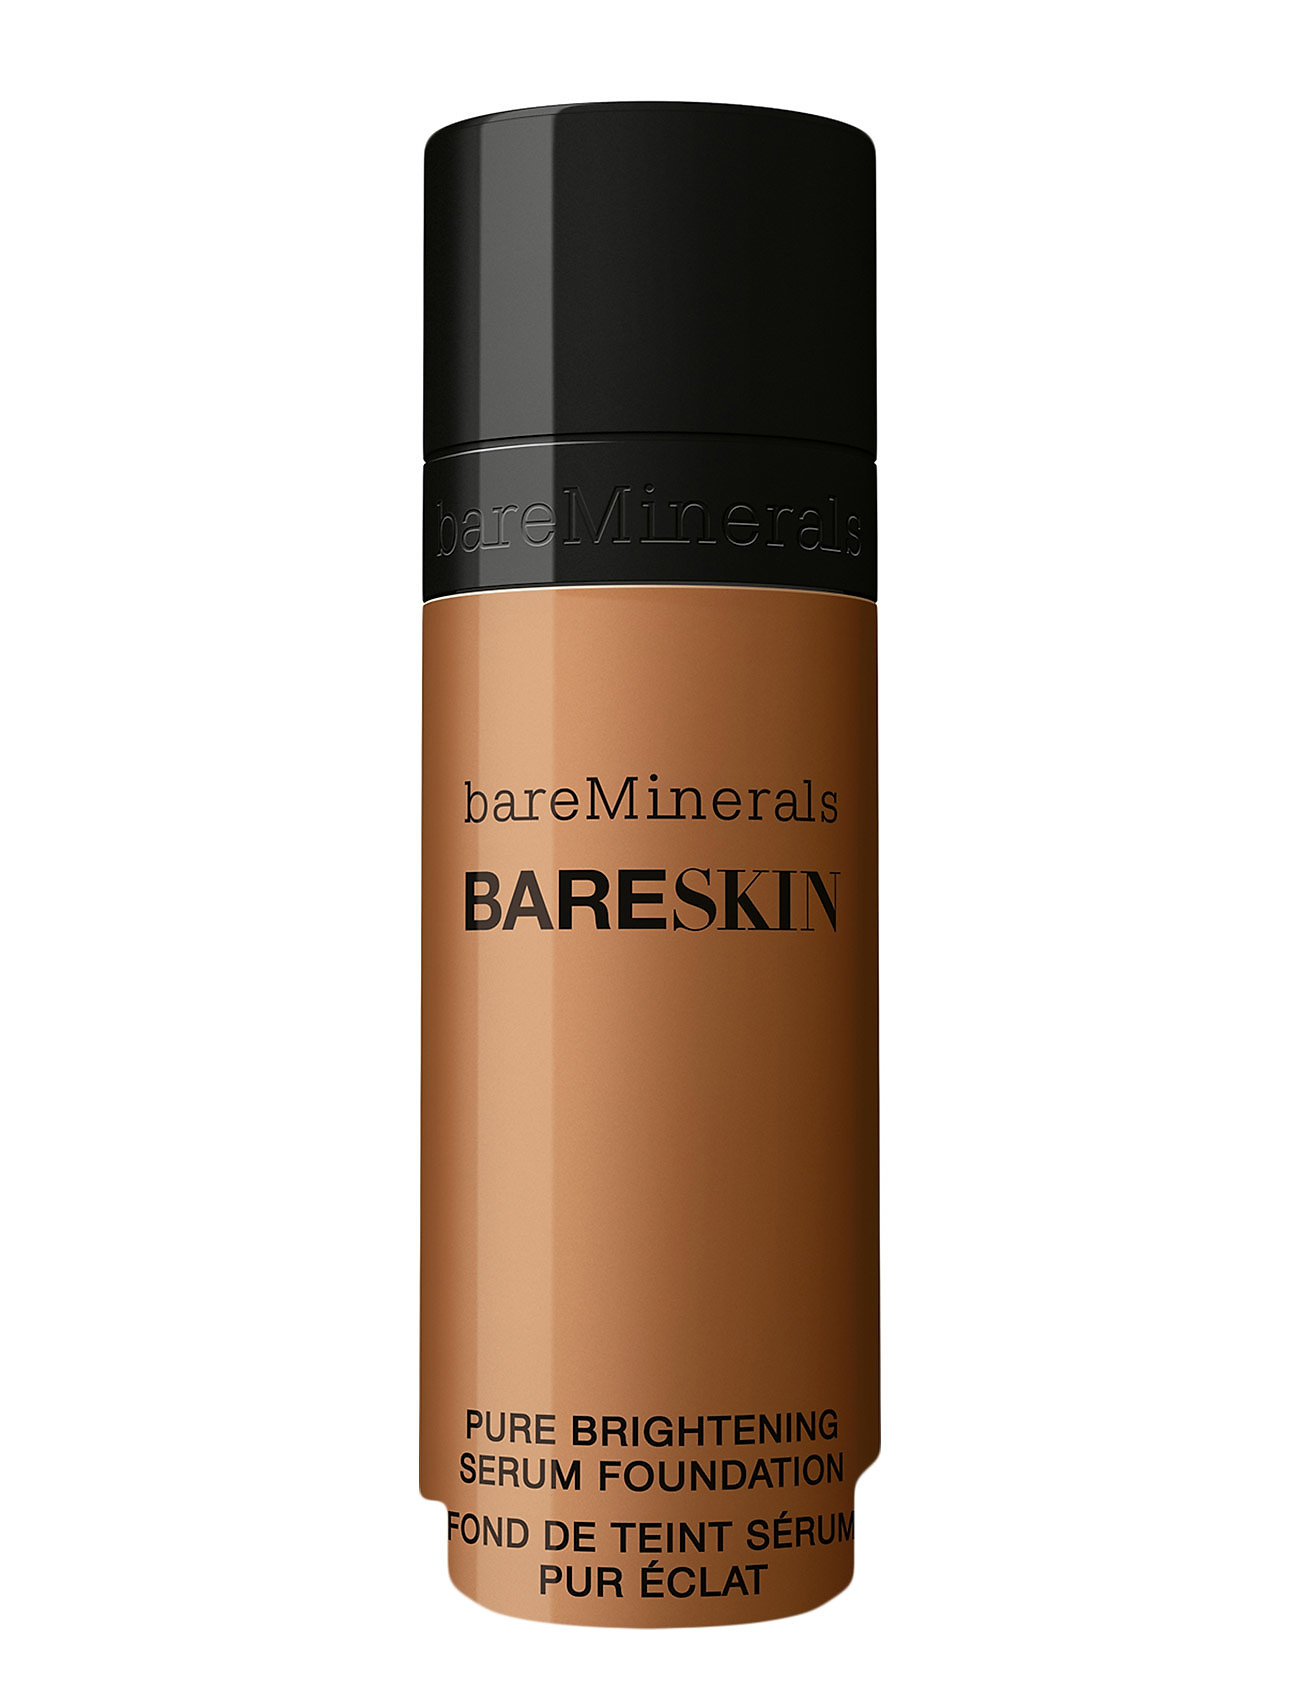 Image of Bareskin Pure Brightening Serum Foundation Spf 20 Foundation Makeup BareMinerals (3067521727)